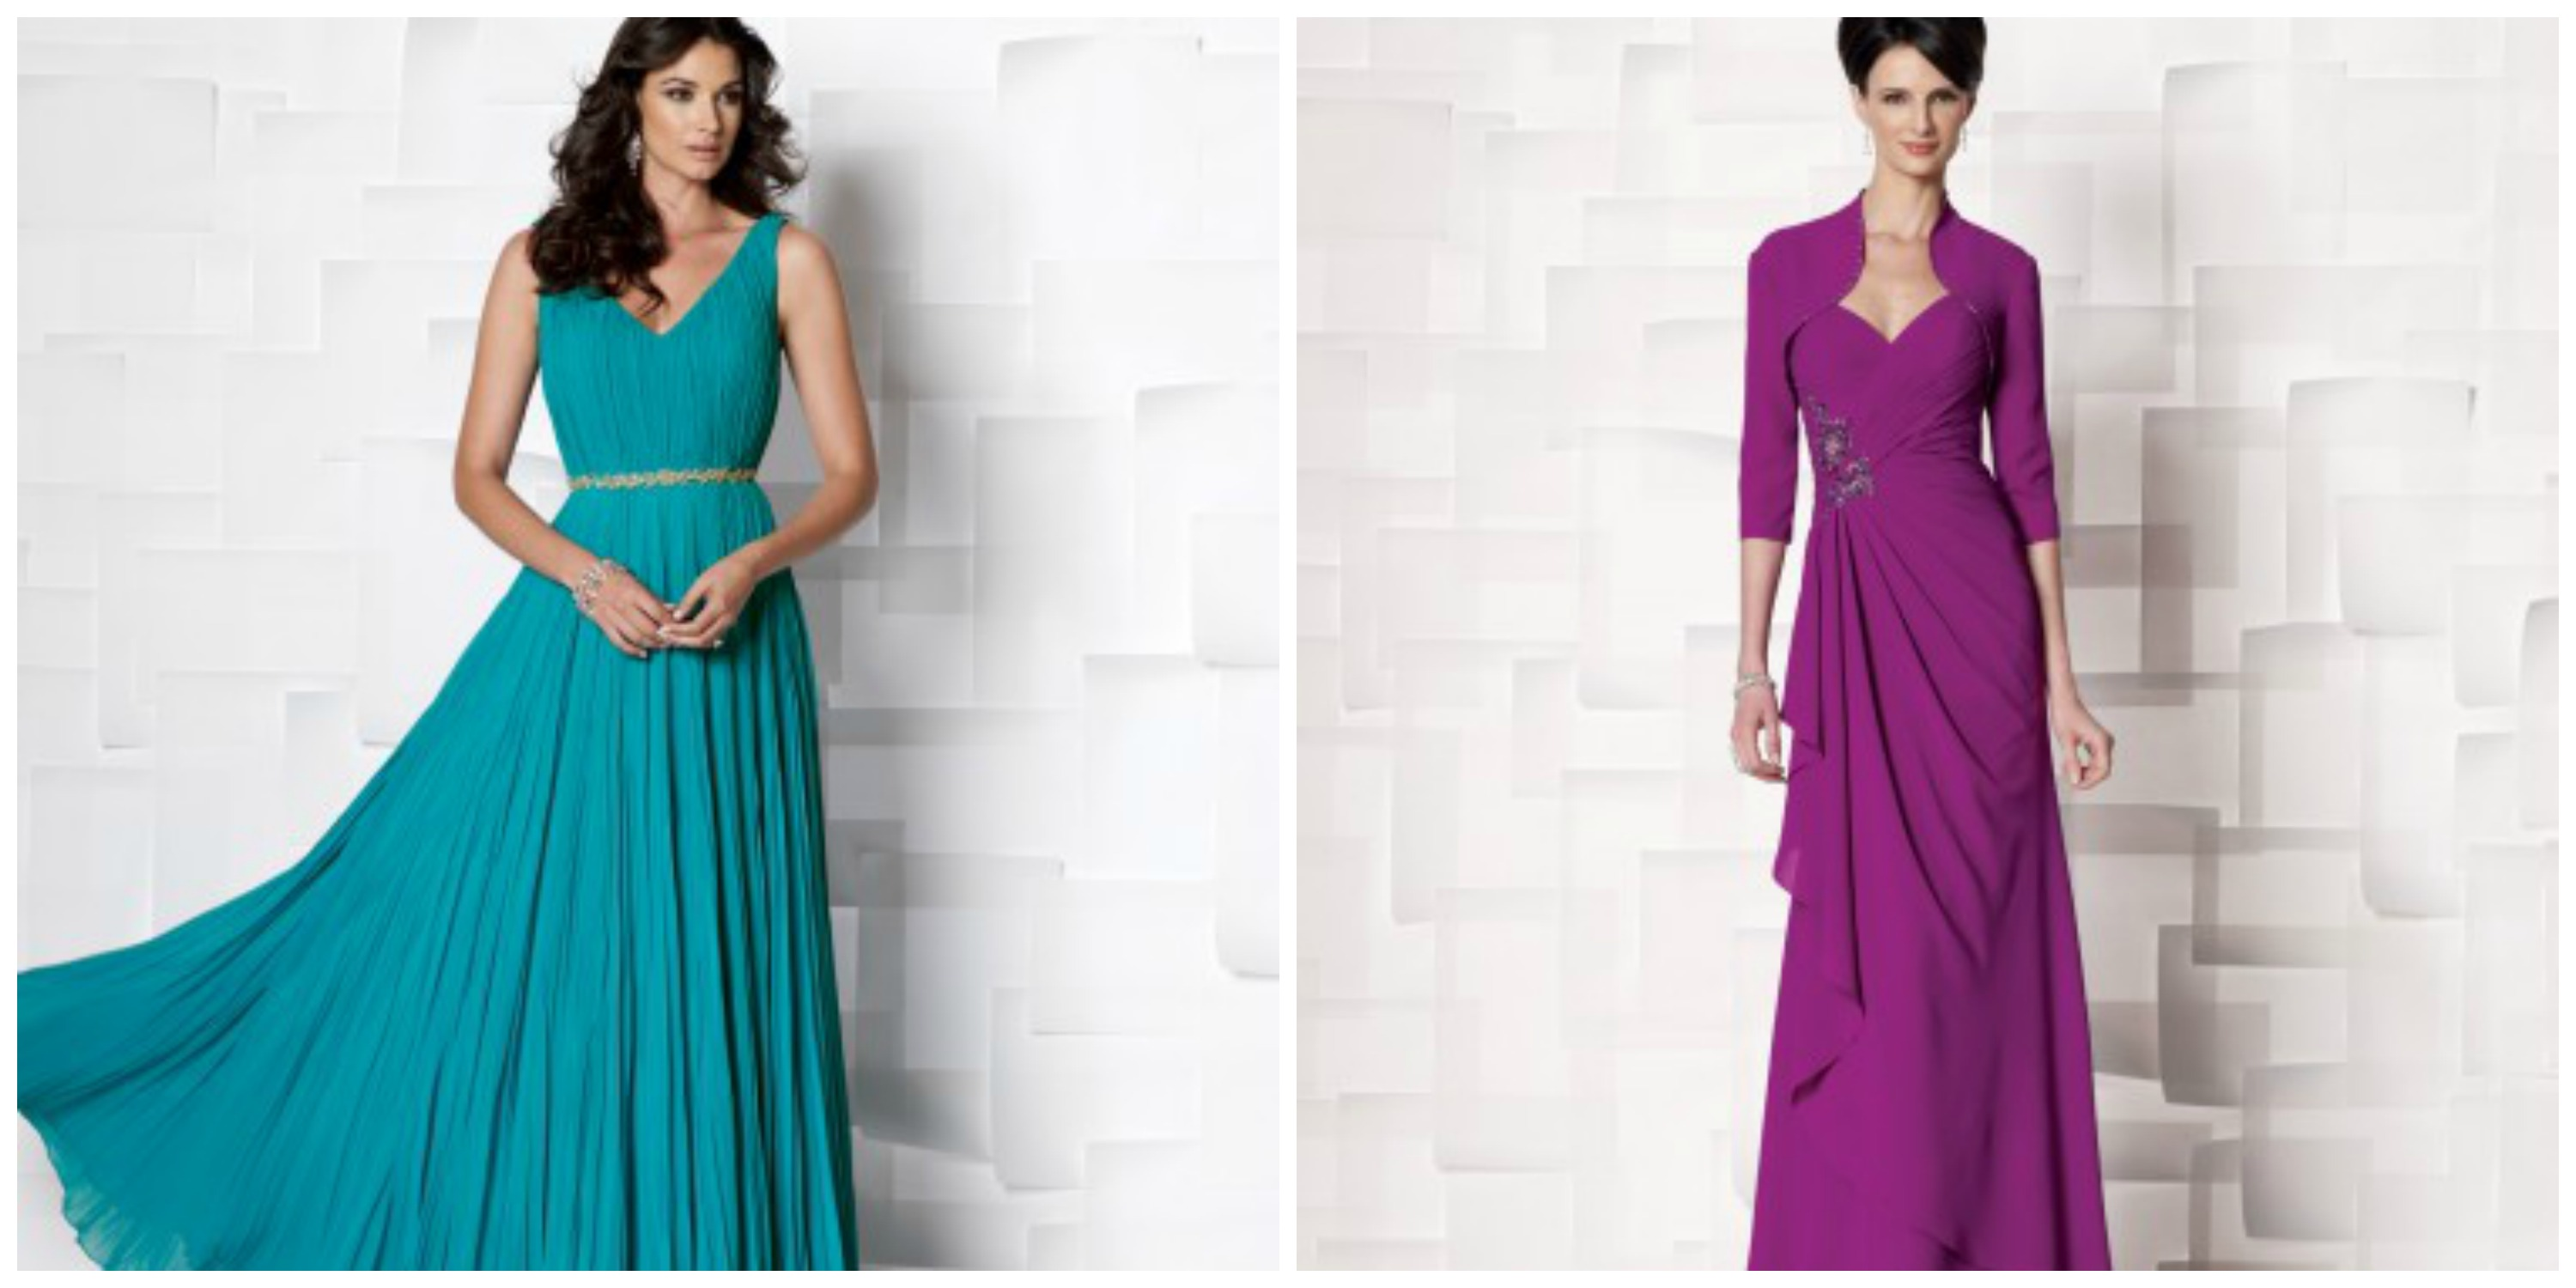 mothers dresses for sons wedding photo - 1